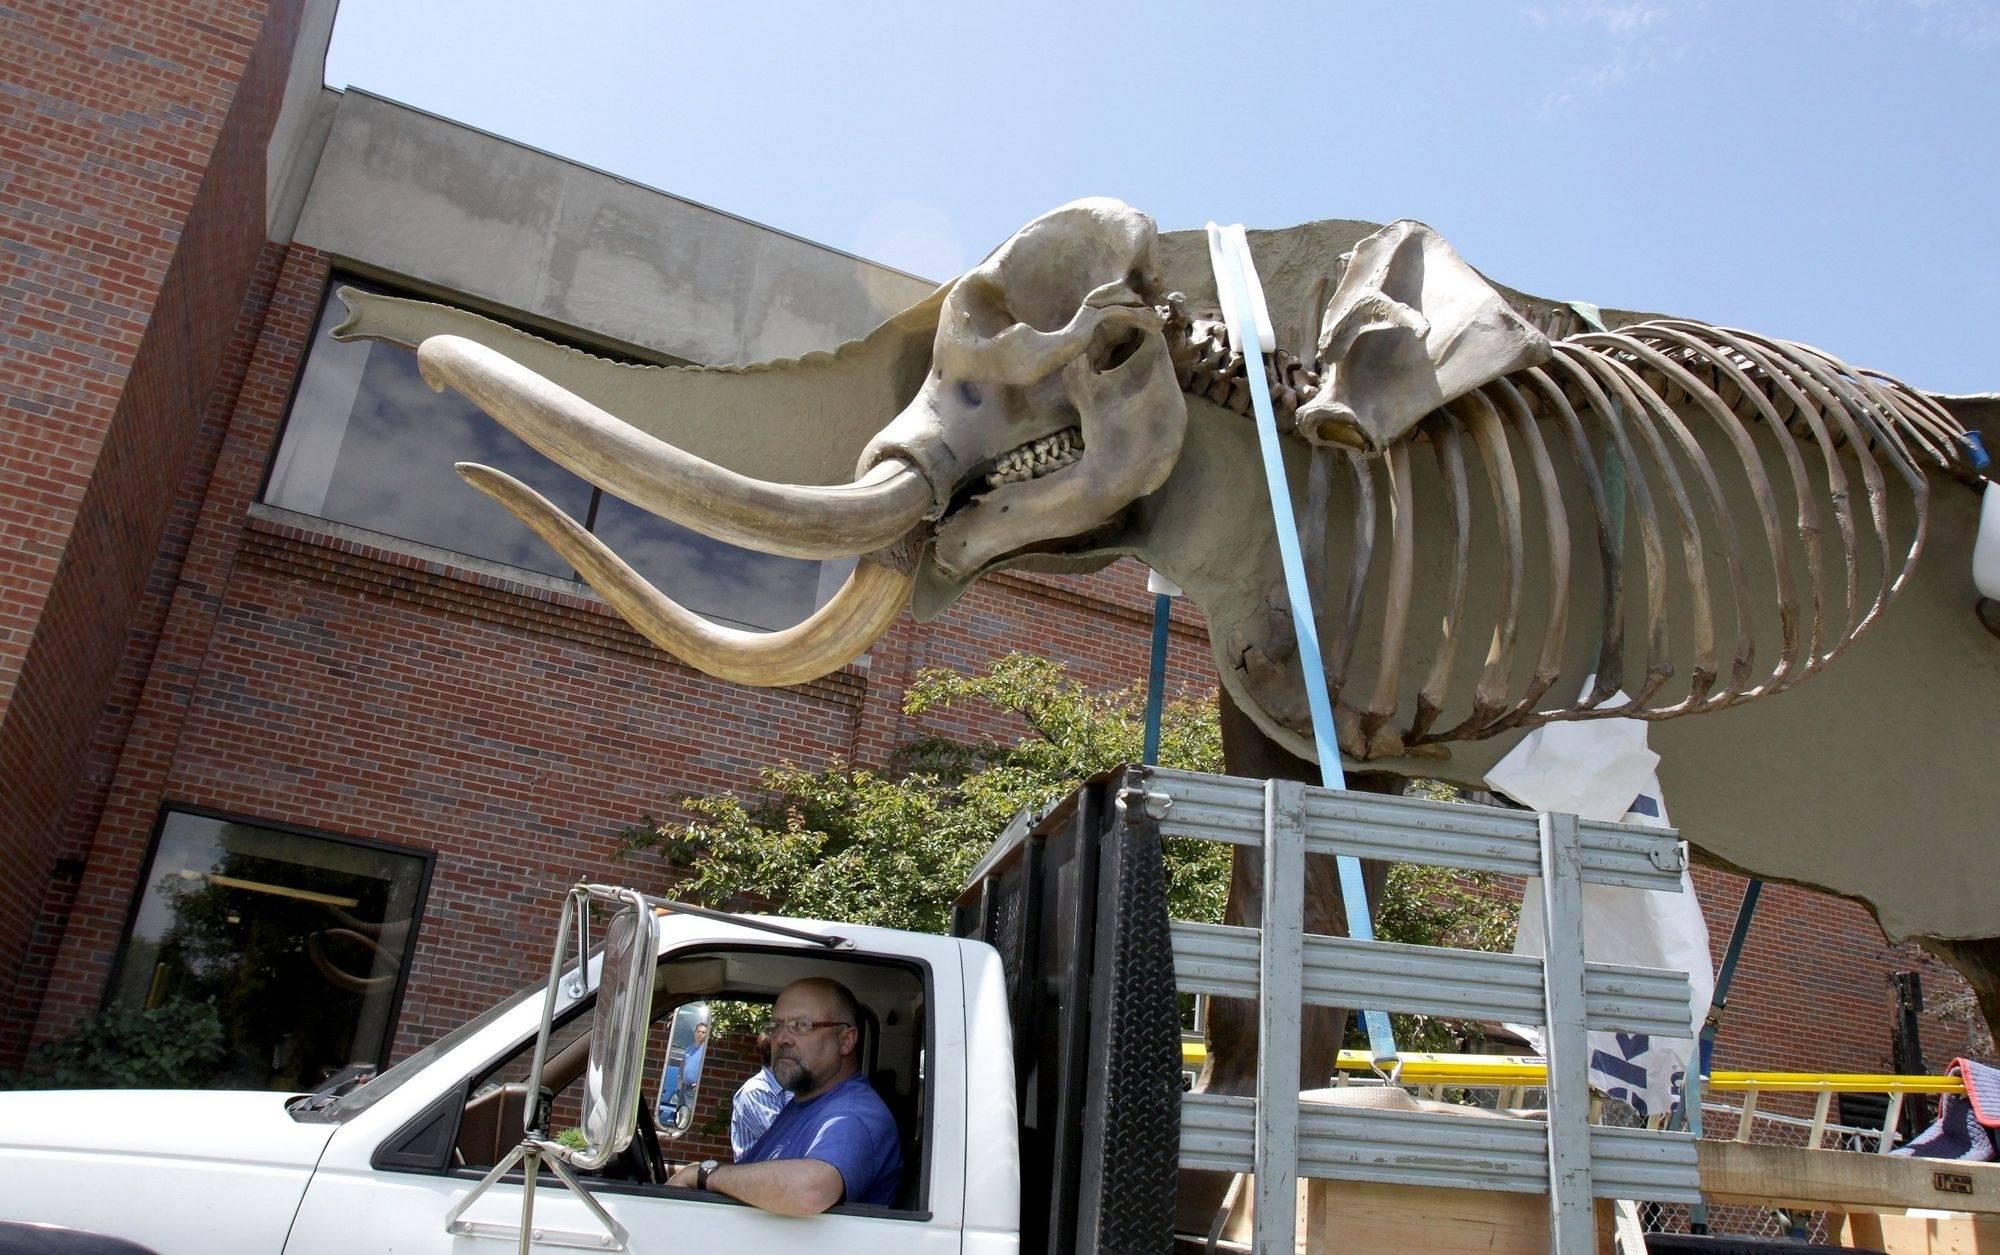 Perry, the Mastodon at Wheaton College, is moved on a flatbed truck to its new home in the new Science Center on Thursday.